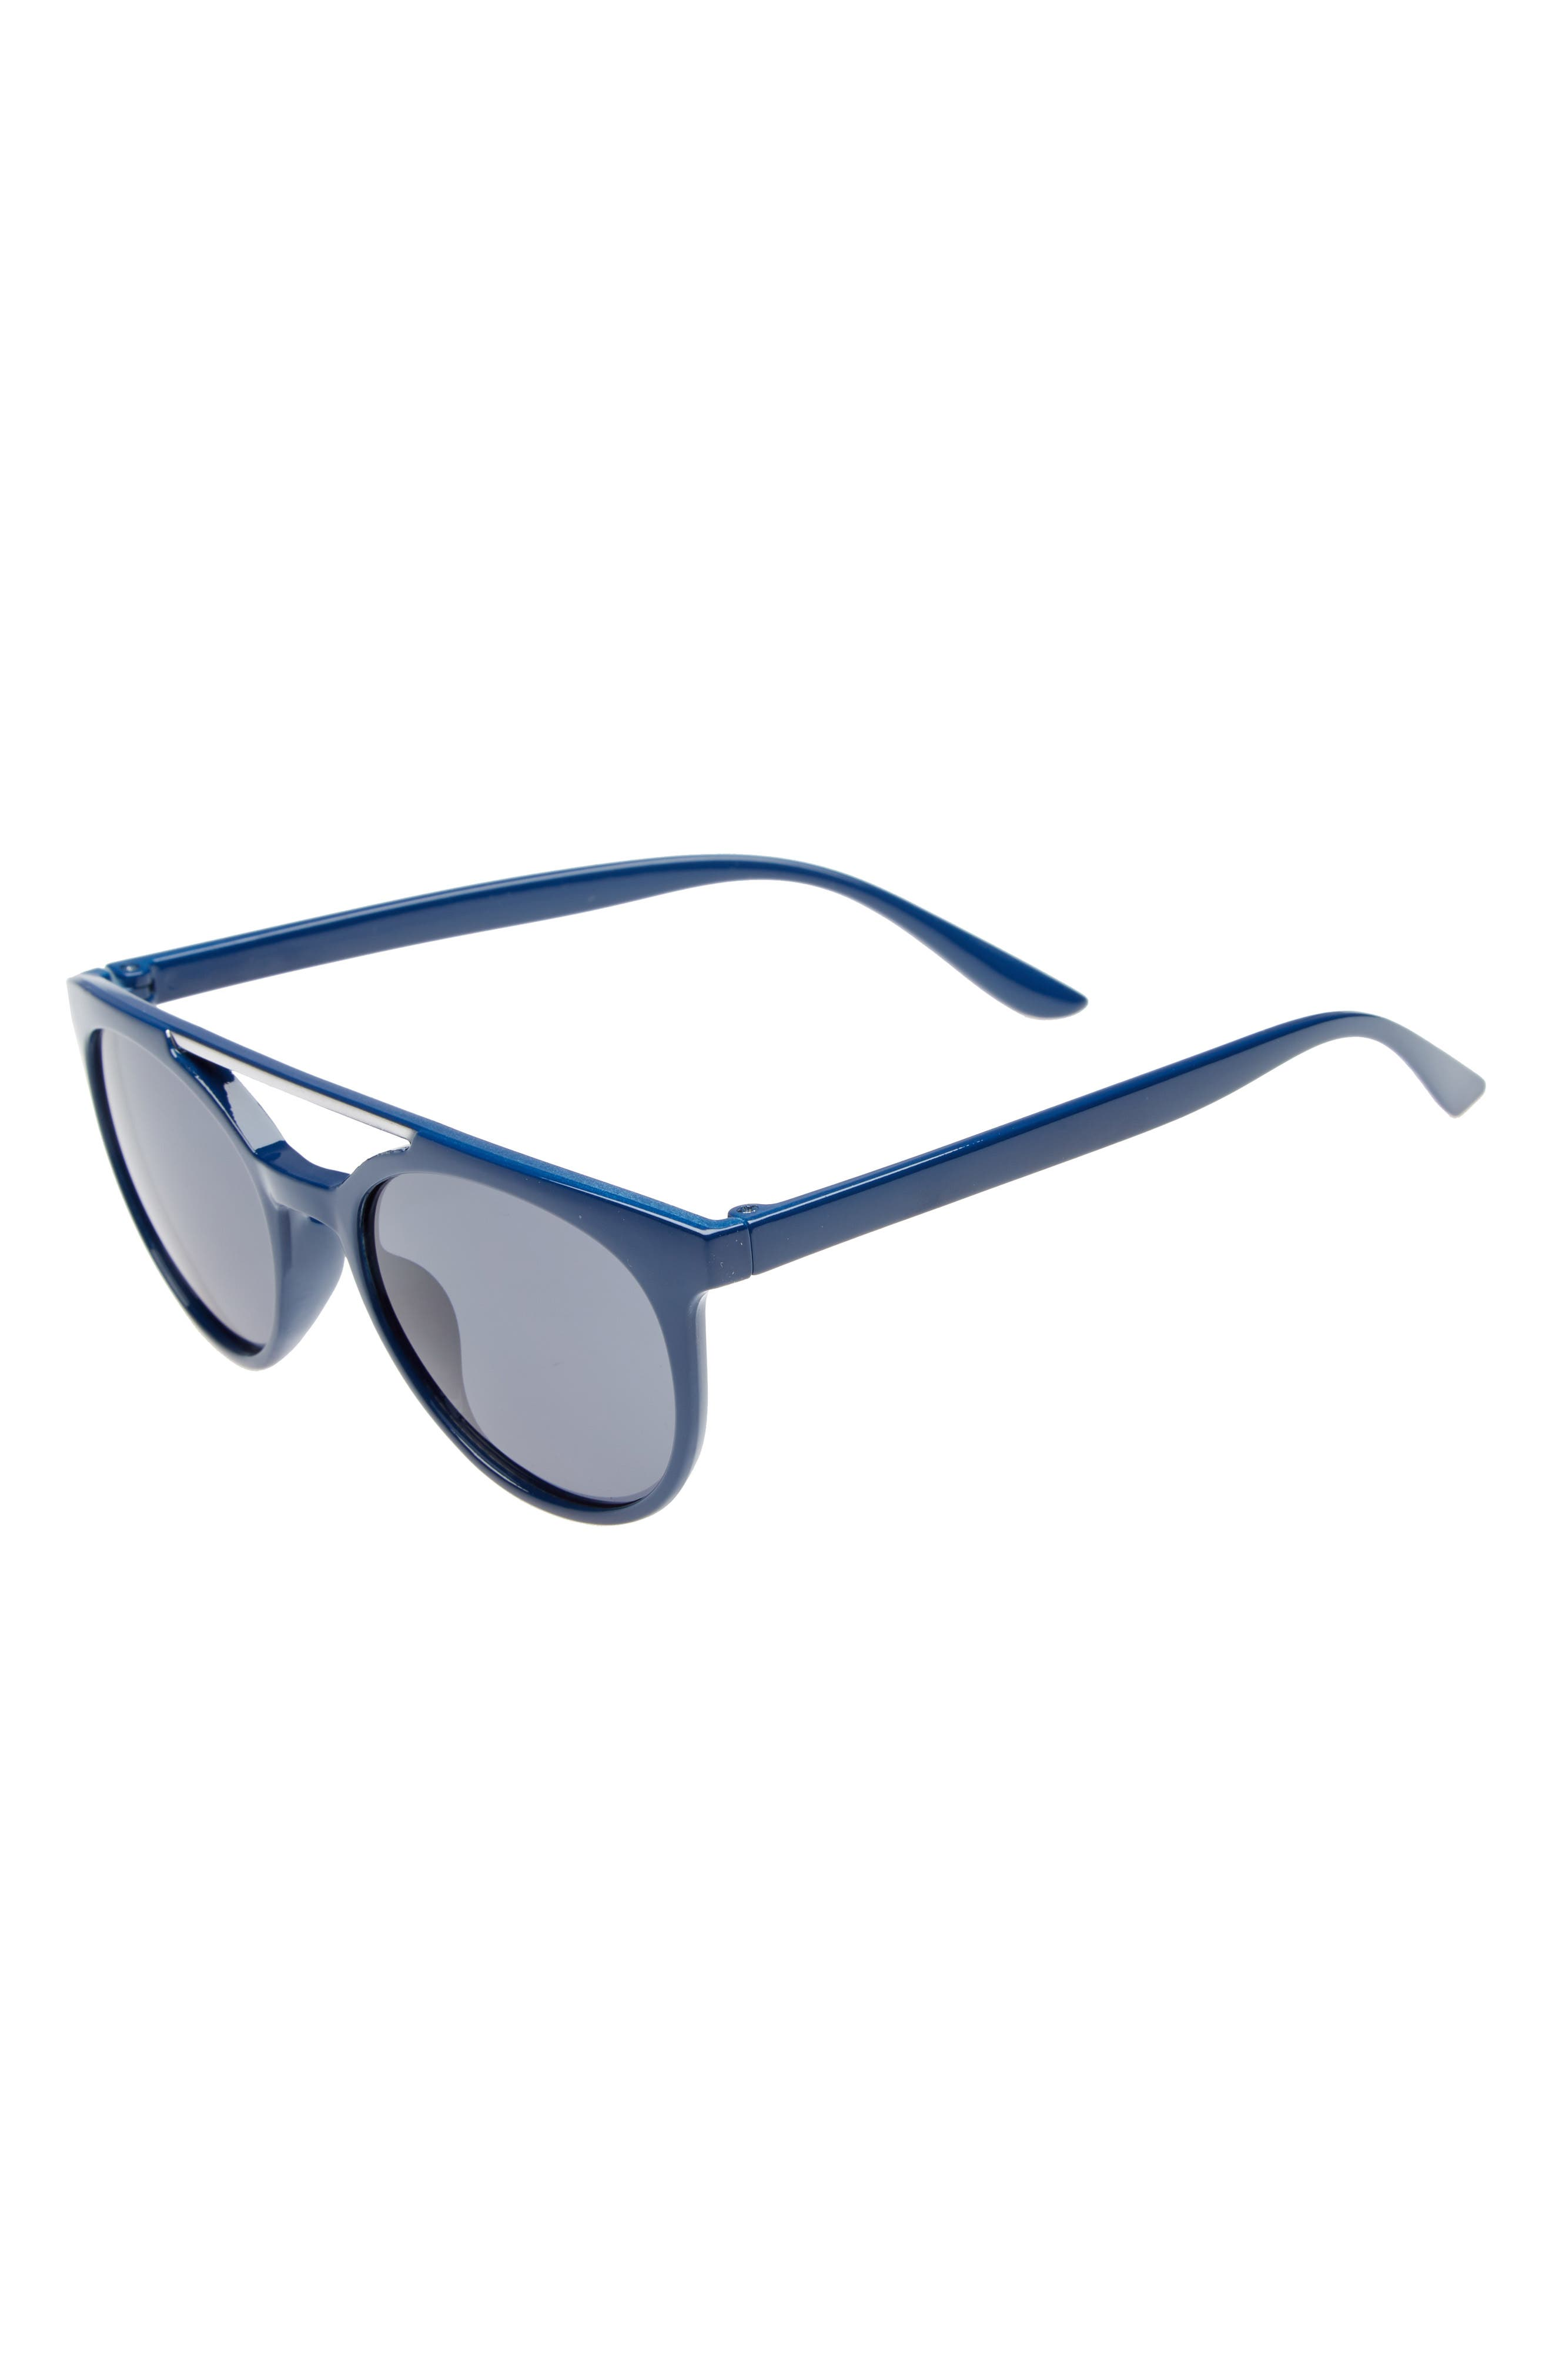 Basic Browbar Sunglasses,                         Main,                         color, Blue